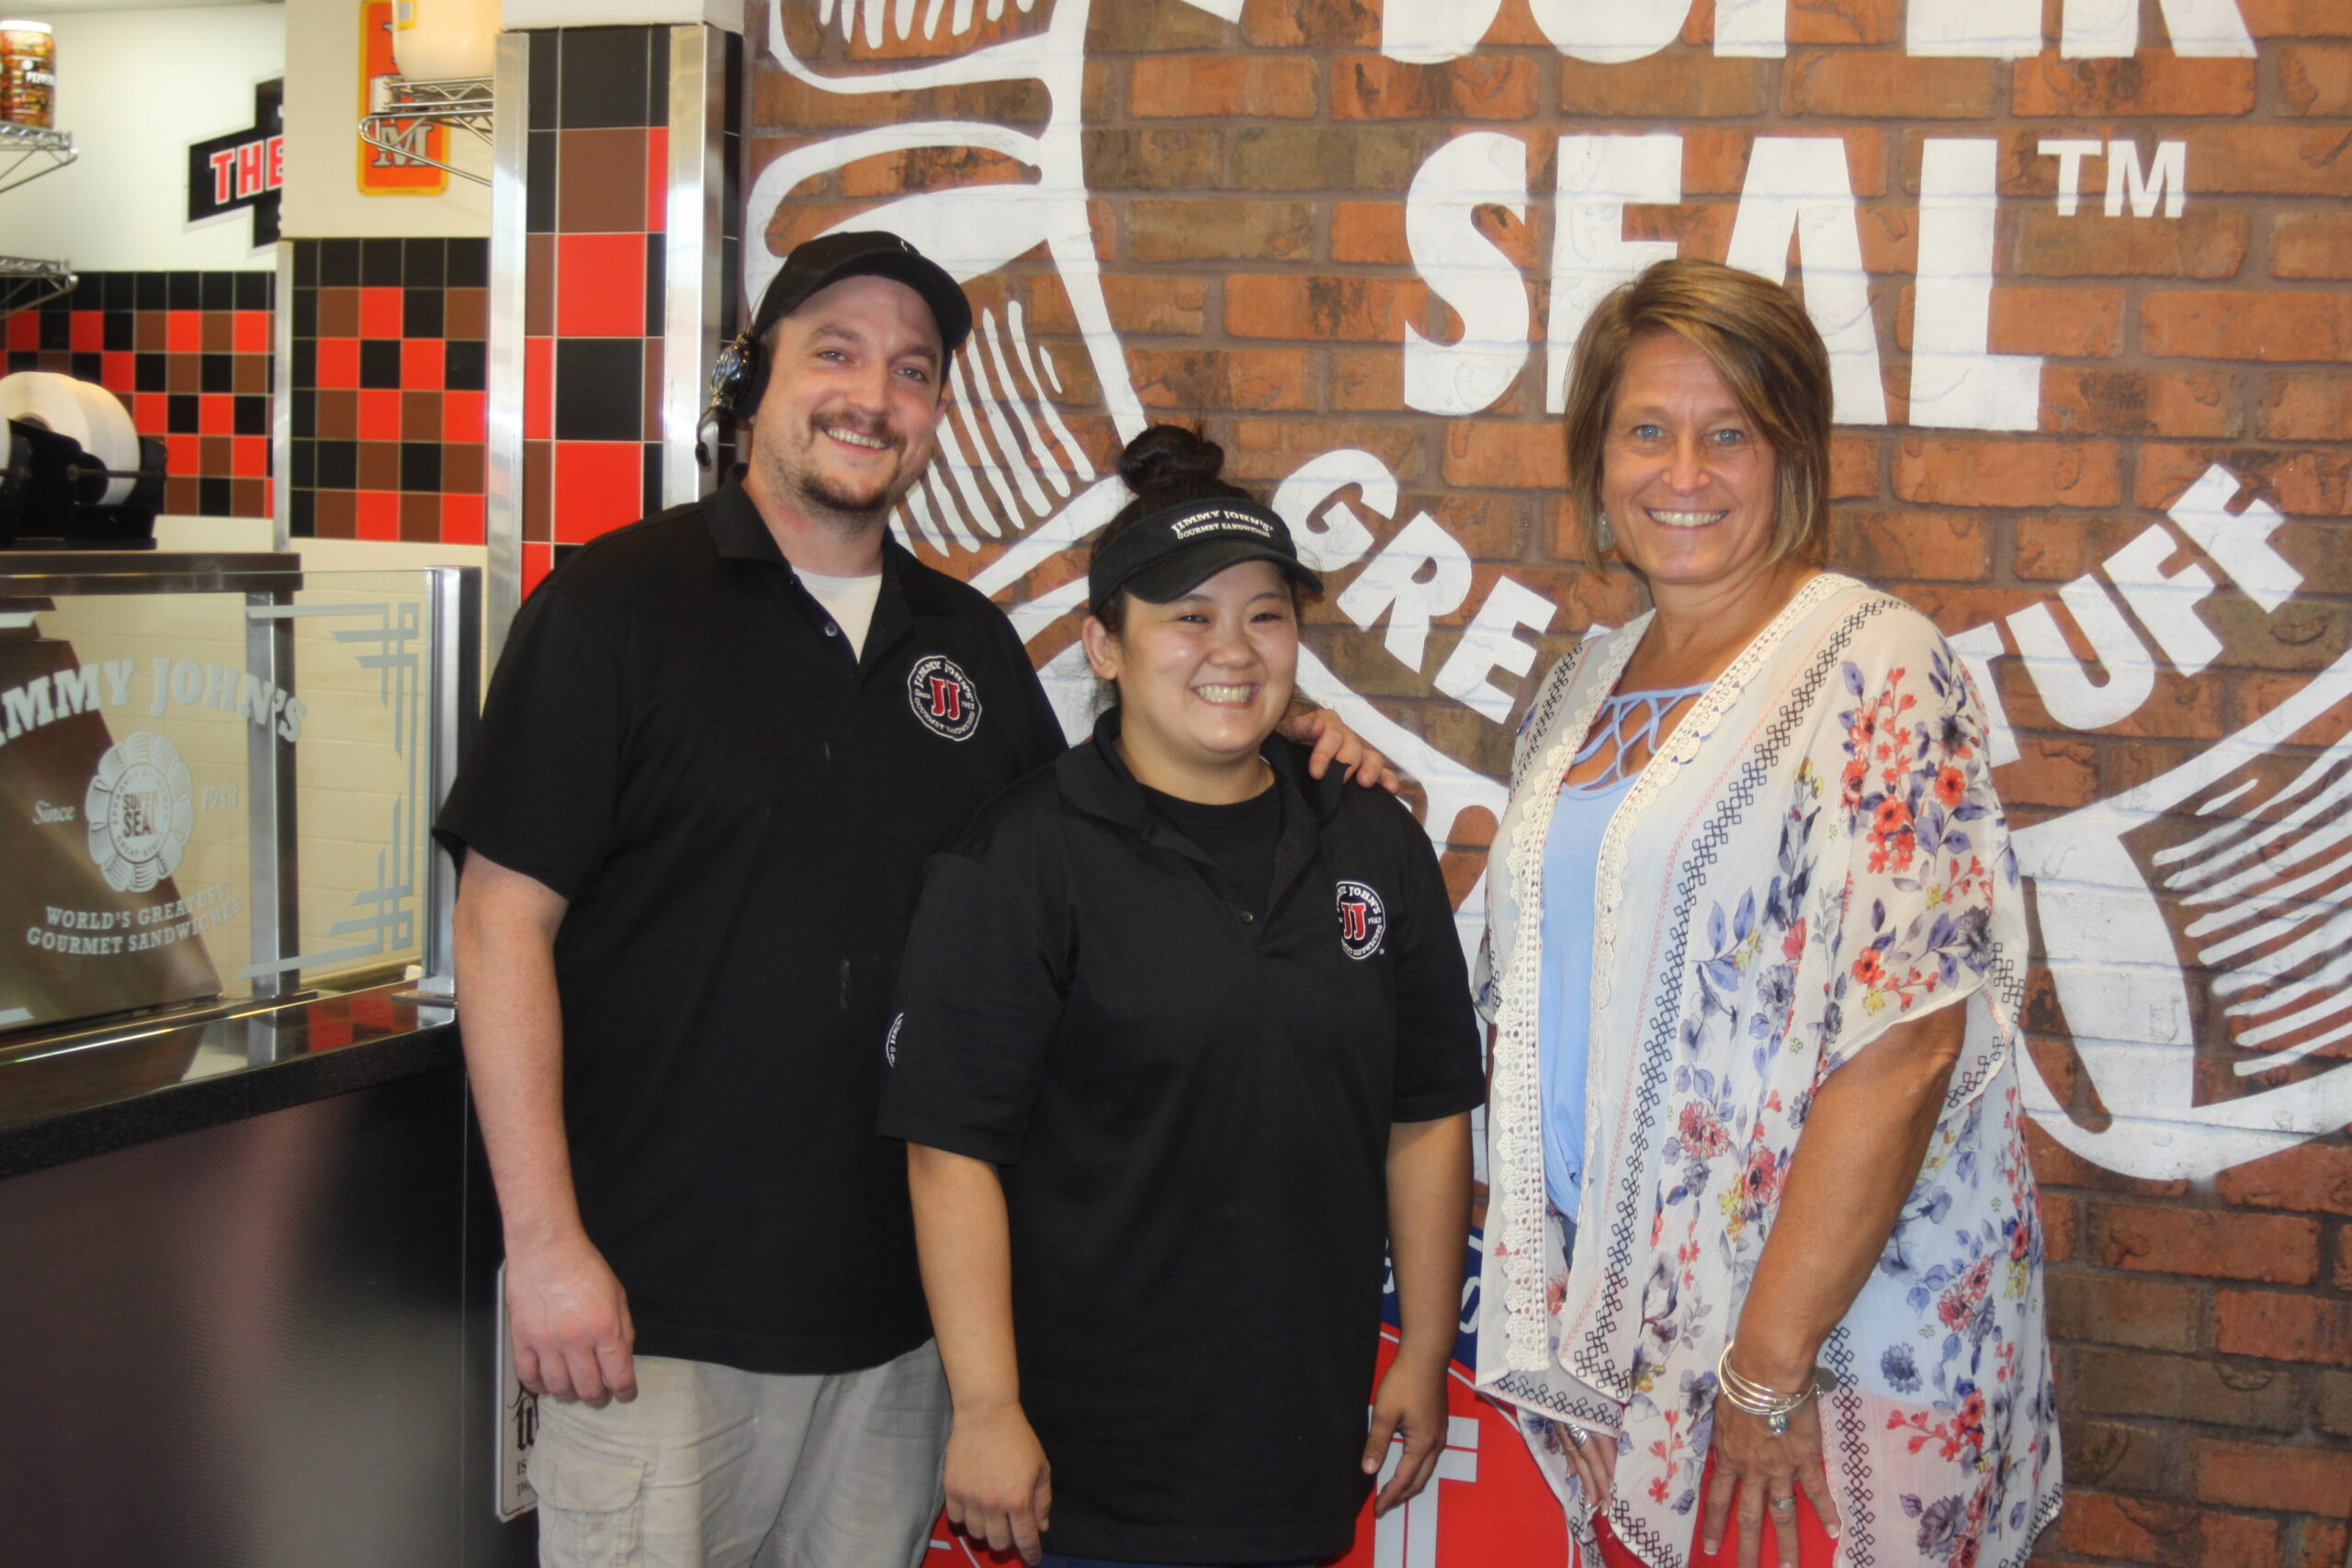 Jimmy John's owners, Larry and Jillian Janulewicz pose with DC3 Director of Marketing and Enrollment Management, Andrea Loll